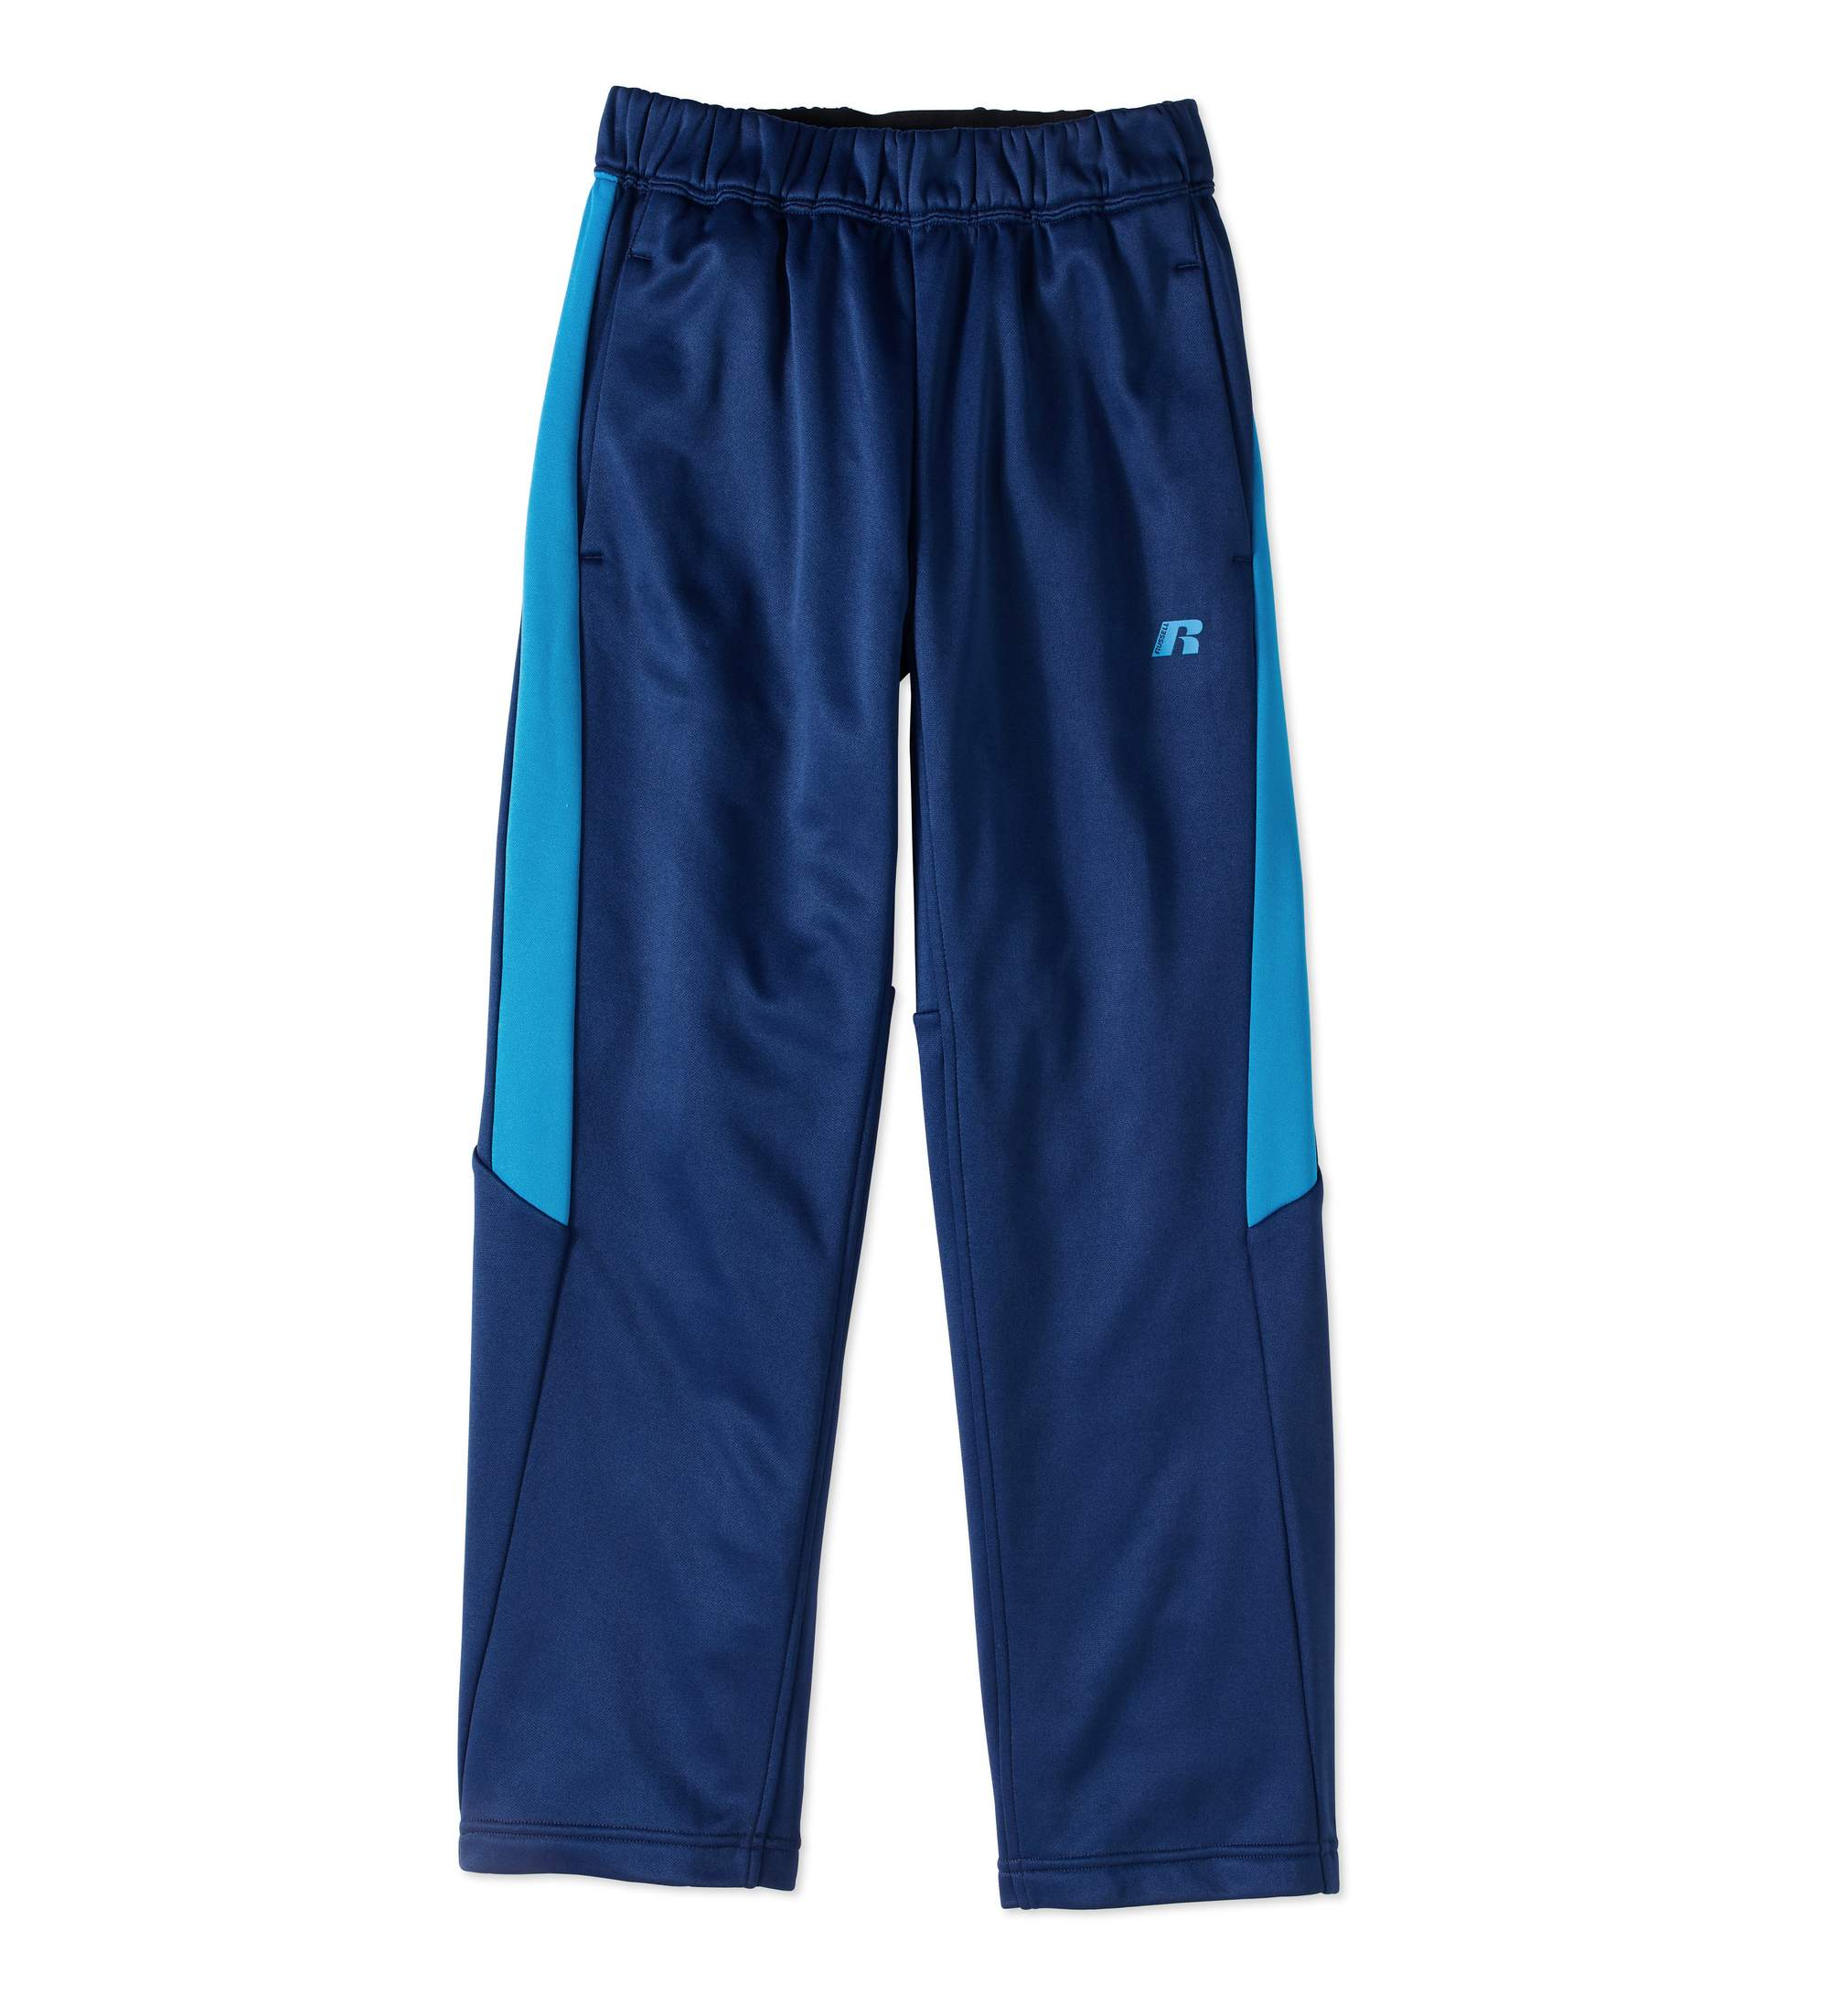 Russell Boys' Tech Fleece Pants